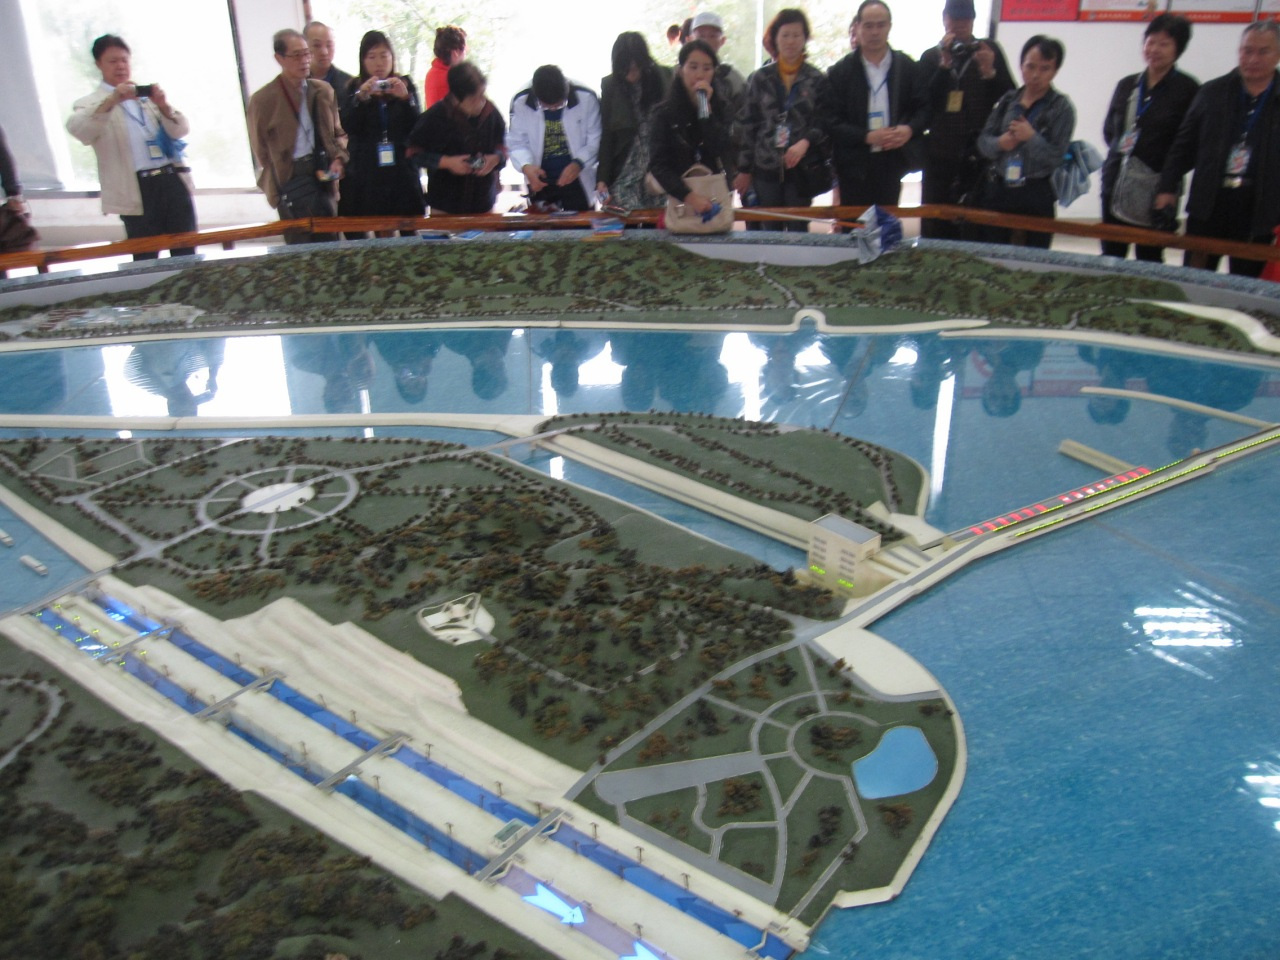 No worries ... here's a plastic one. Behold! the plastic three gorges project